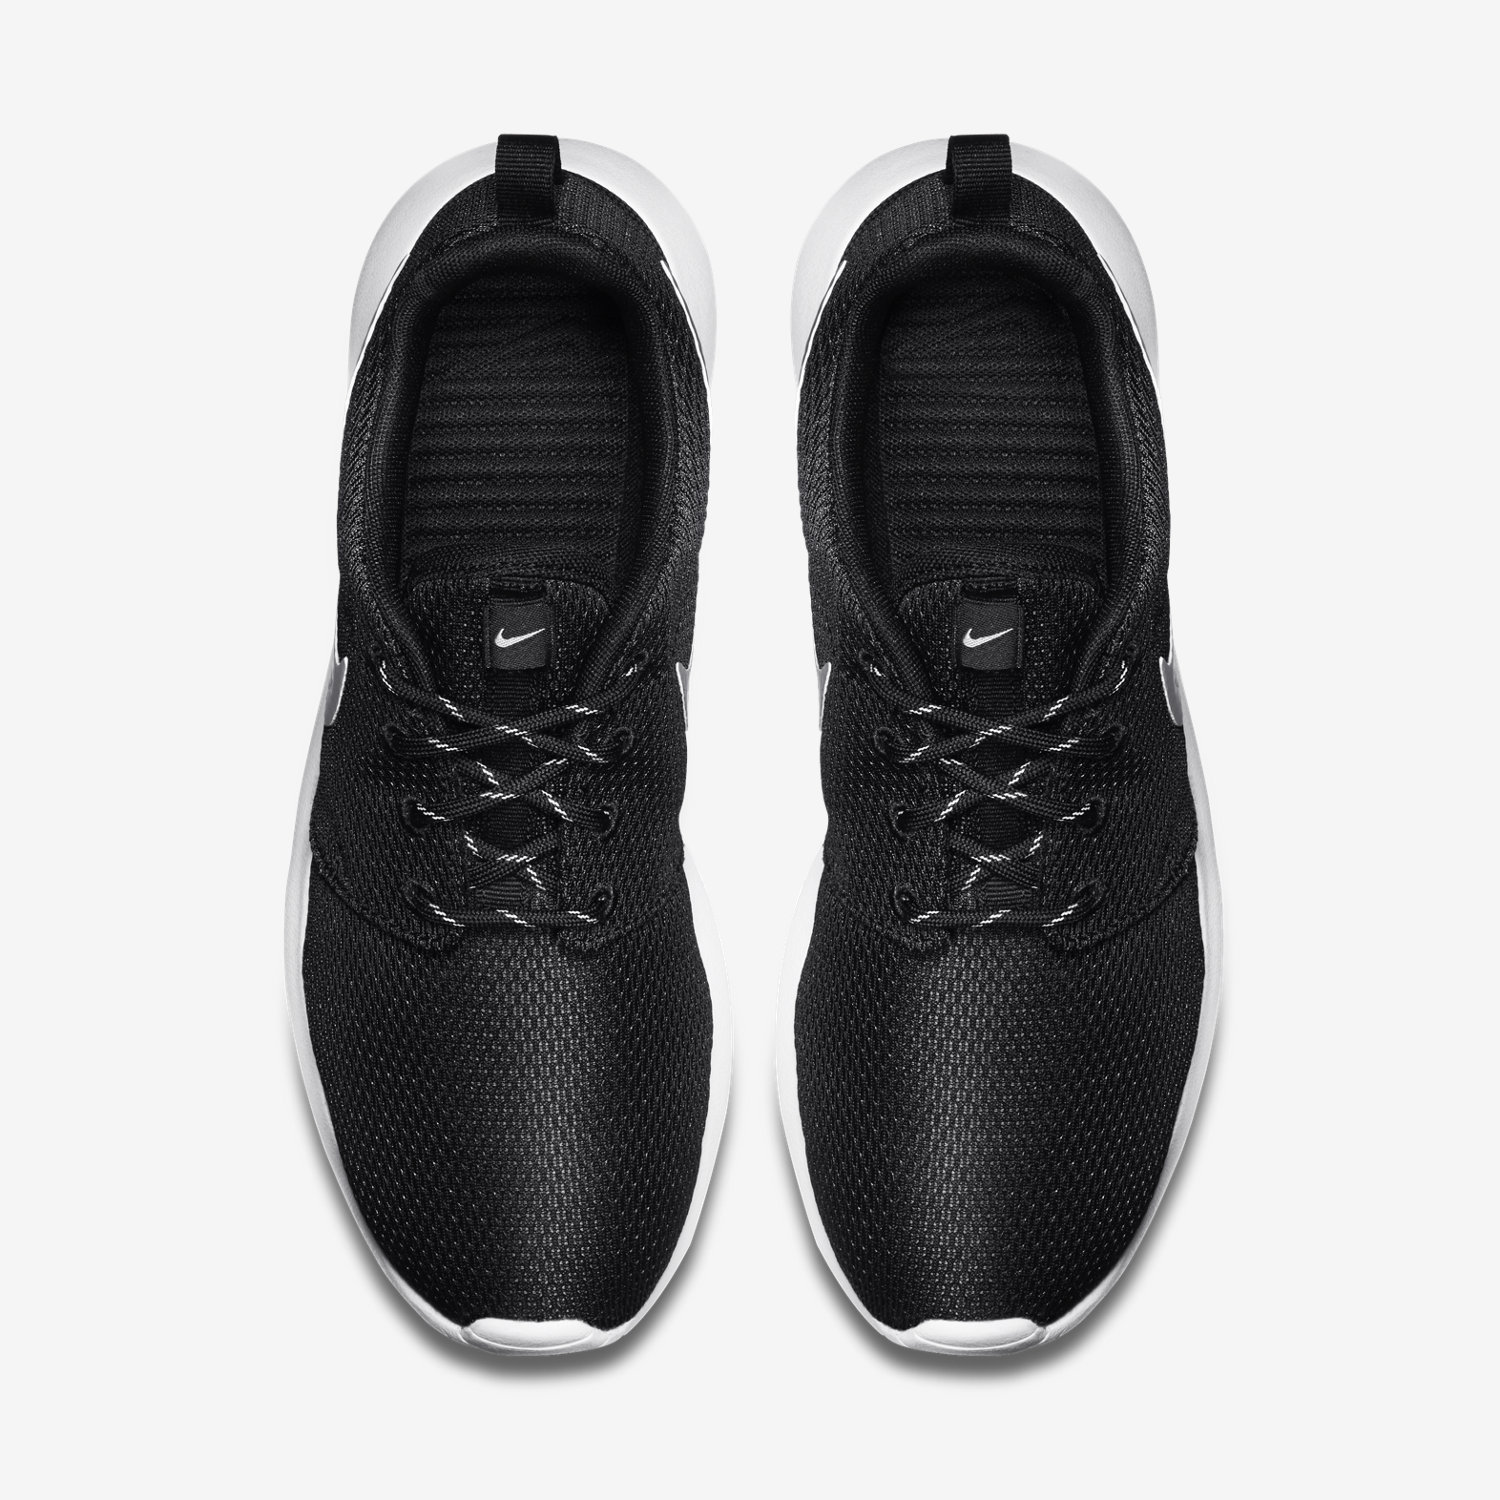 Nike Free 3.0 V5 Cheap Jordan shoes, Cheap sneakers online free